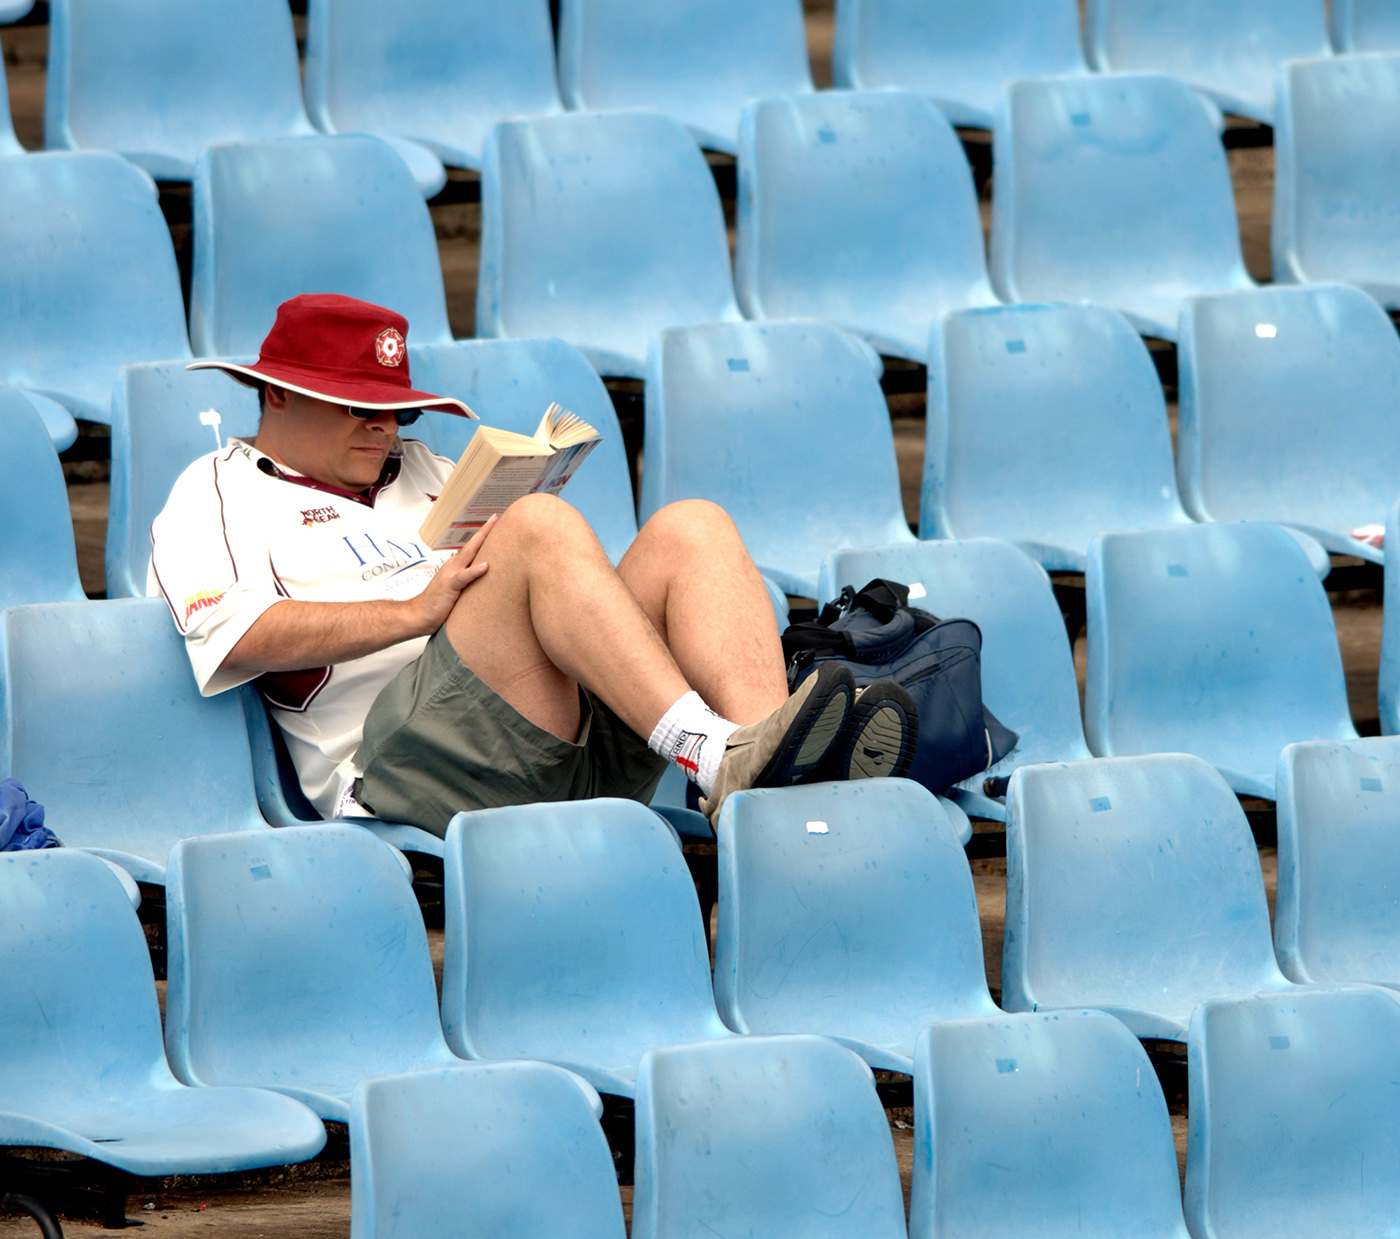 A fan reads in the stands